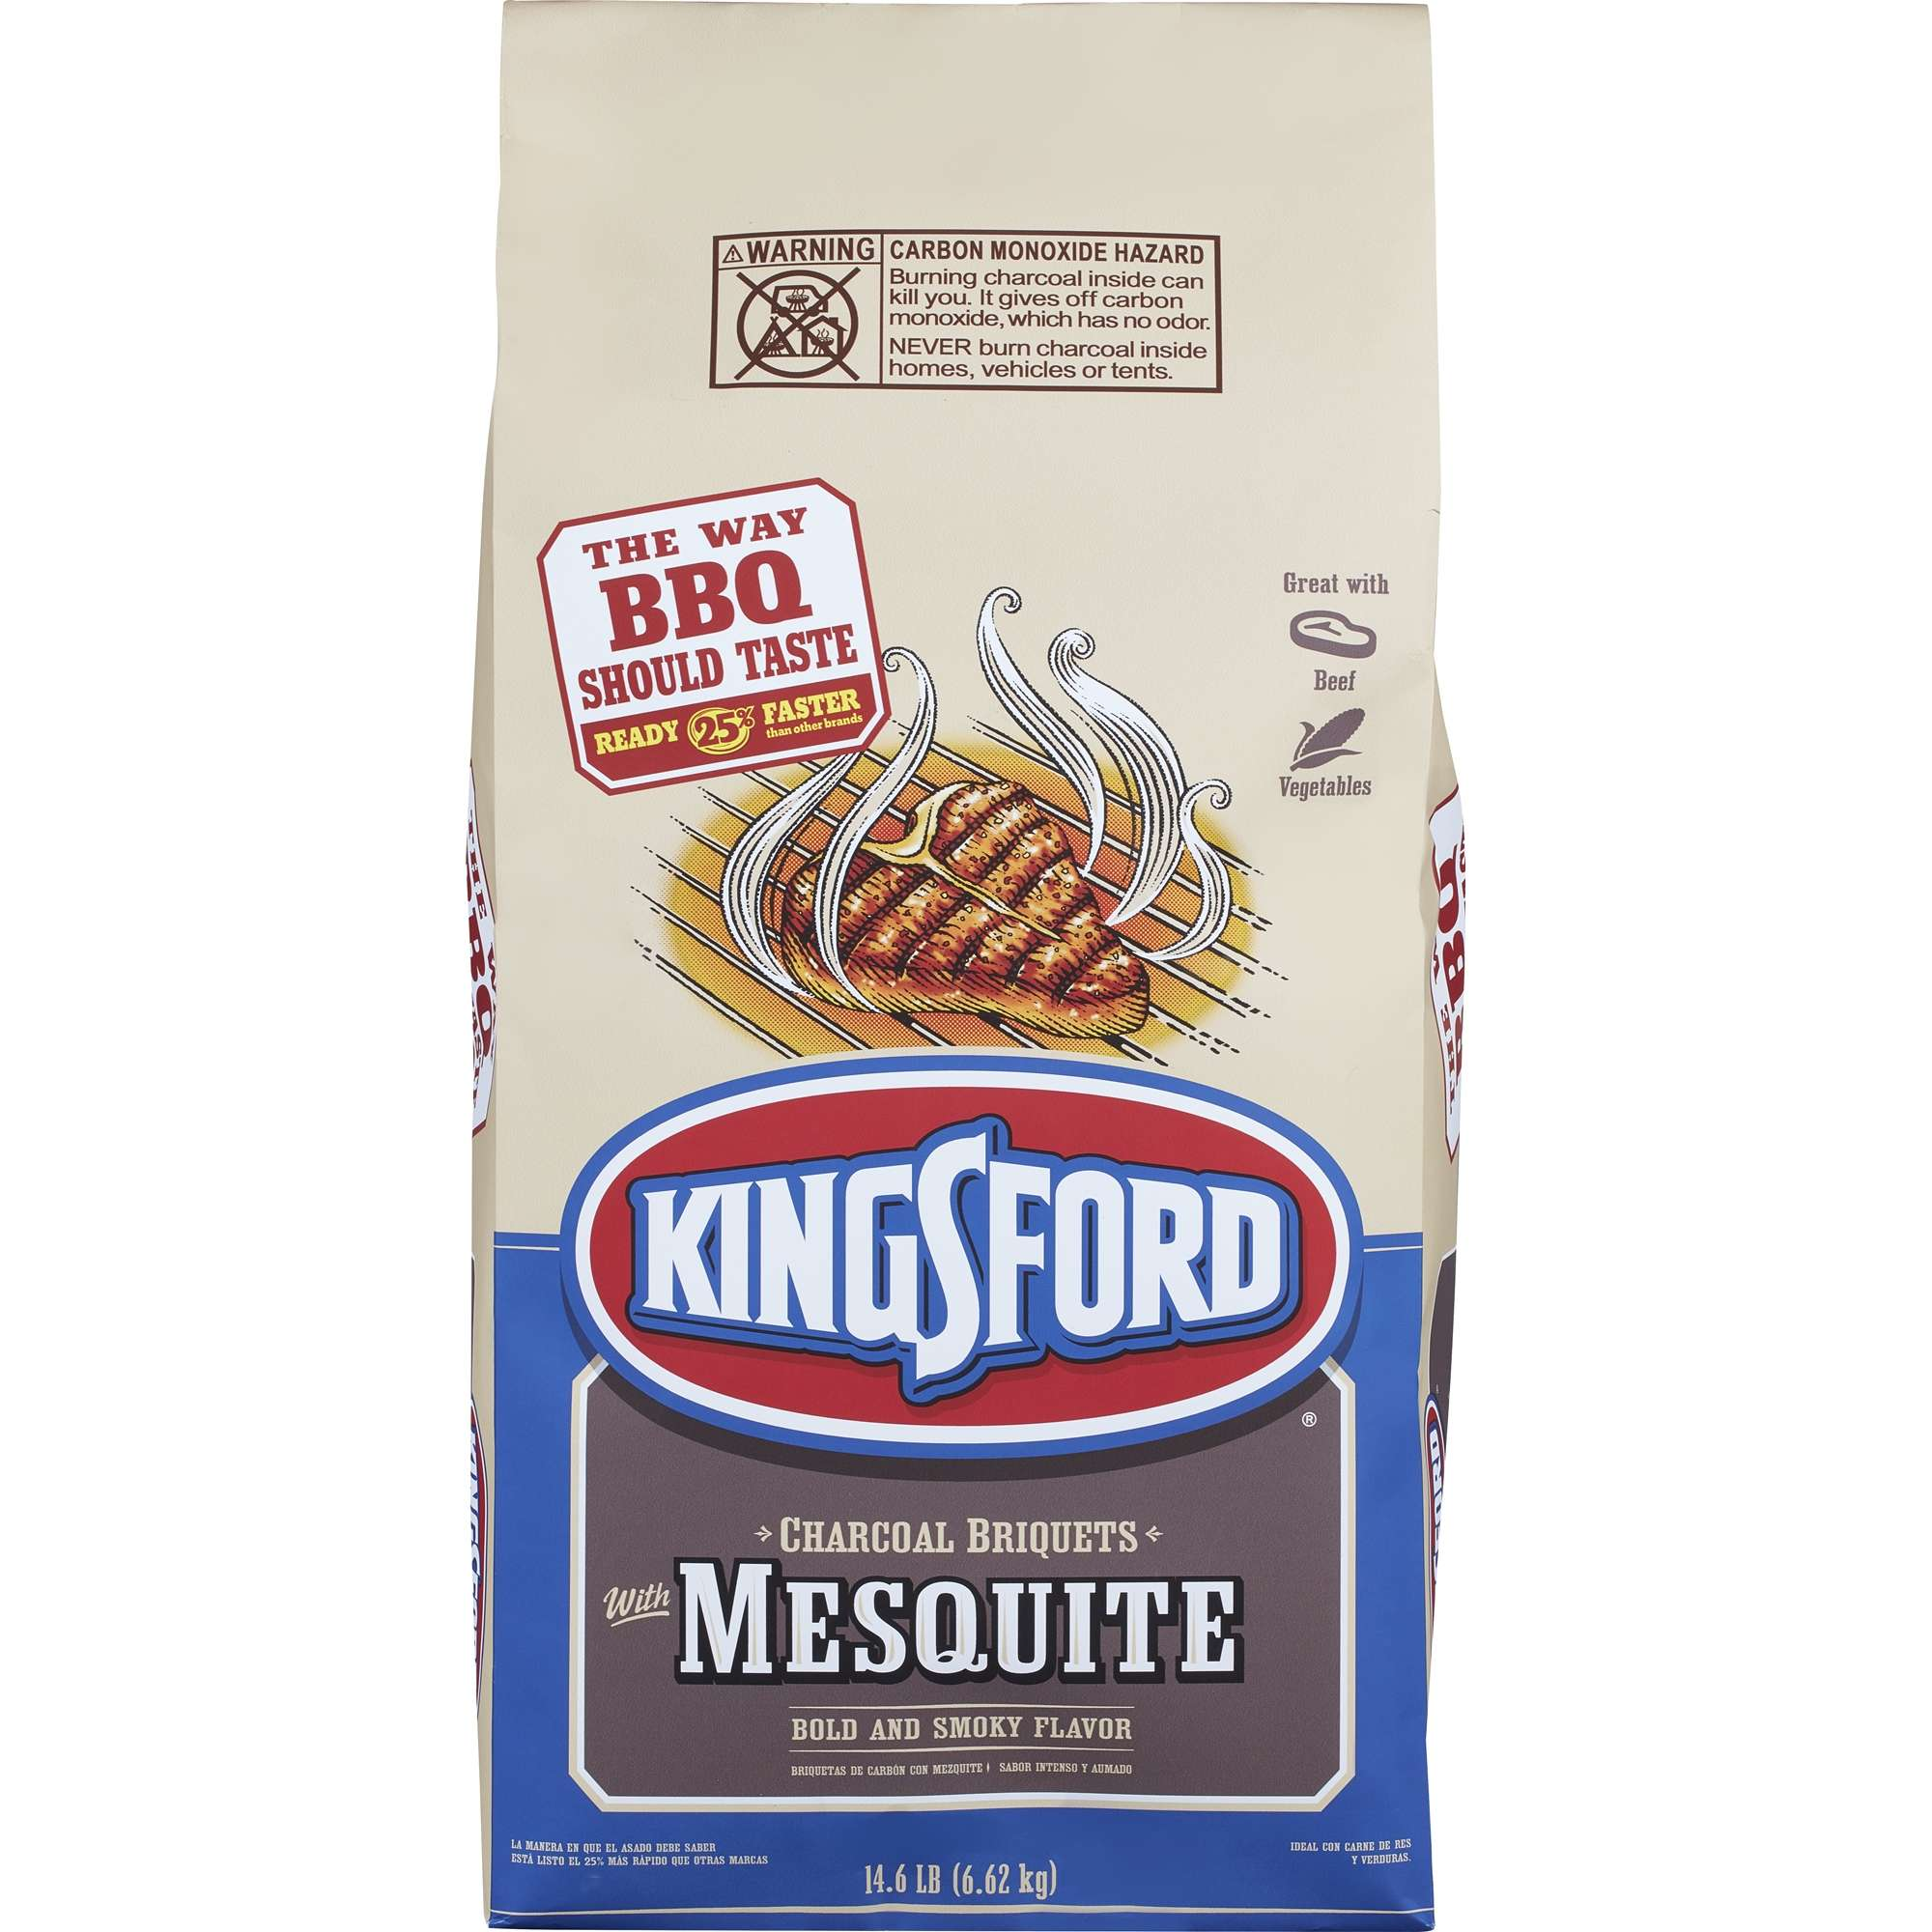 kingsford charcoal brief case report Executive summary as a result of the case analysis, it has been determined that kingsford has seen diminishing sales from 1996 to 2000 due to several factors, including a shrinking charcoal grilling industry, competition on the part of major rivals like royal oak and private label brands, insufficient price increases in comparison to competitors, increasing popularity of gas grilling as .